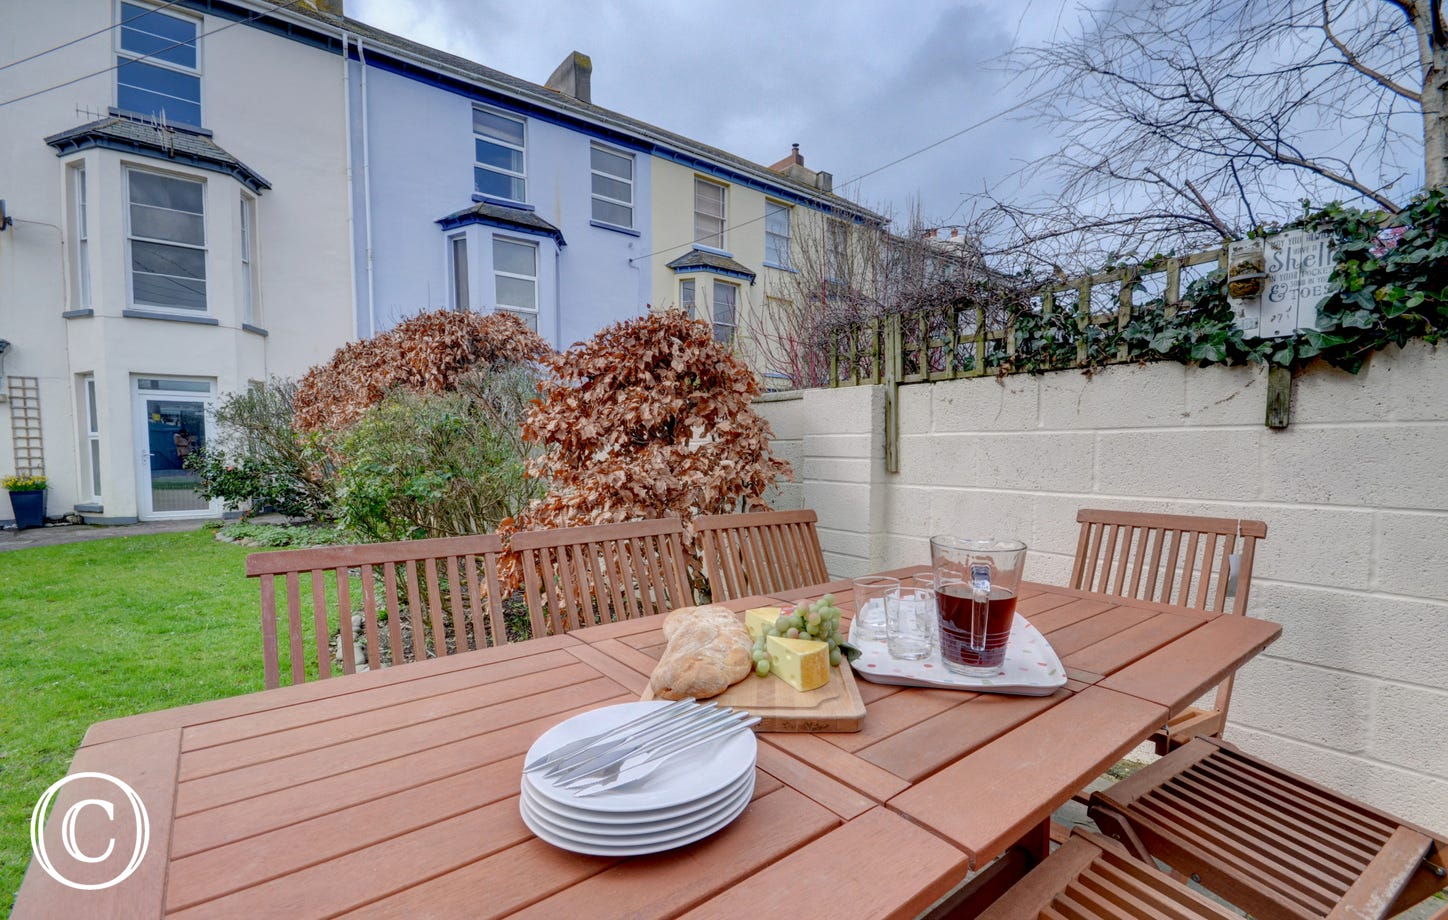 The garden with garden furniture, great for al fresco dining